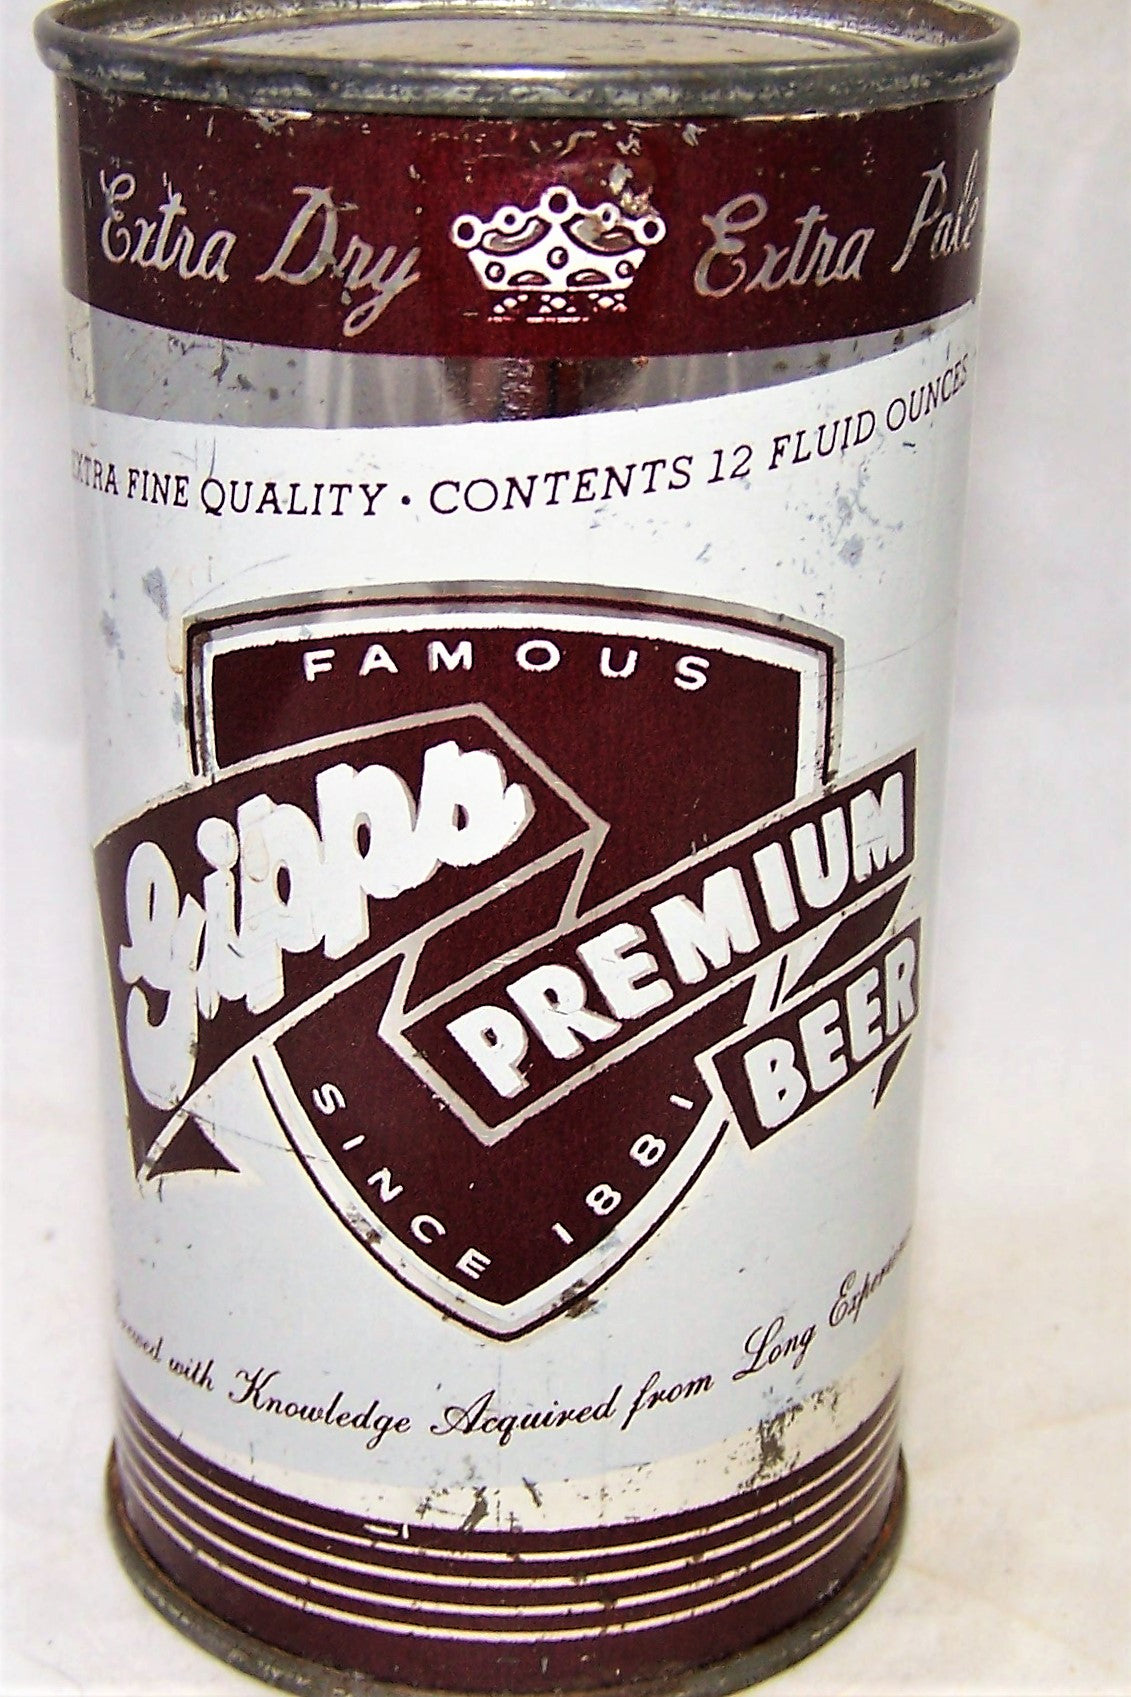 Gipps Premium Beer (All Brown) USBC 69-39, Grade 1-